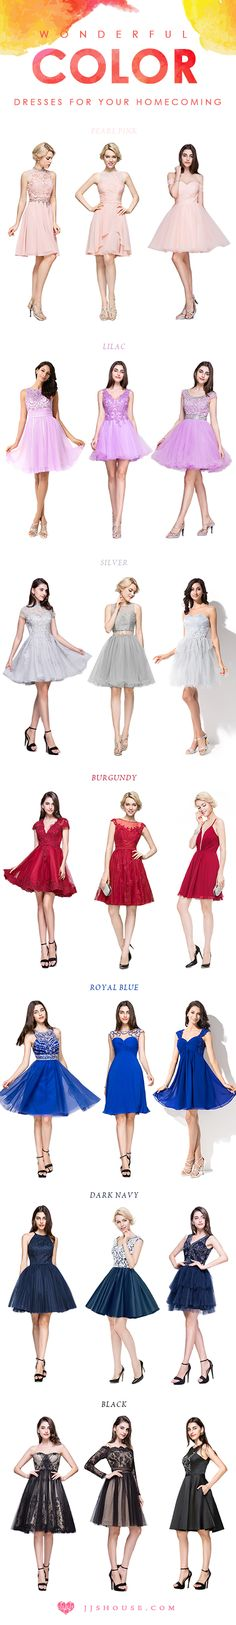 Wonderful color Dresses For Your Homecoming! #Homecomingdress